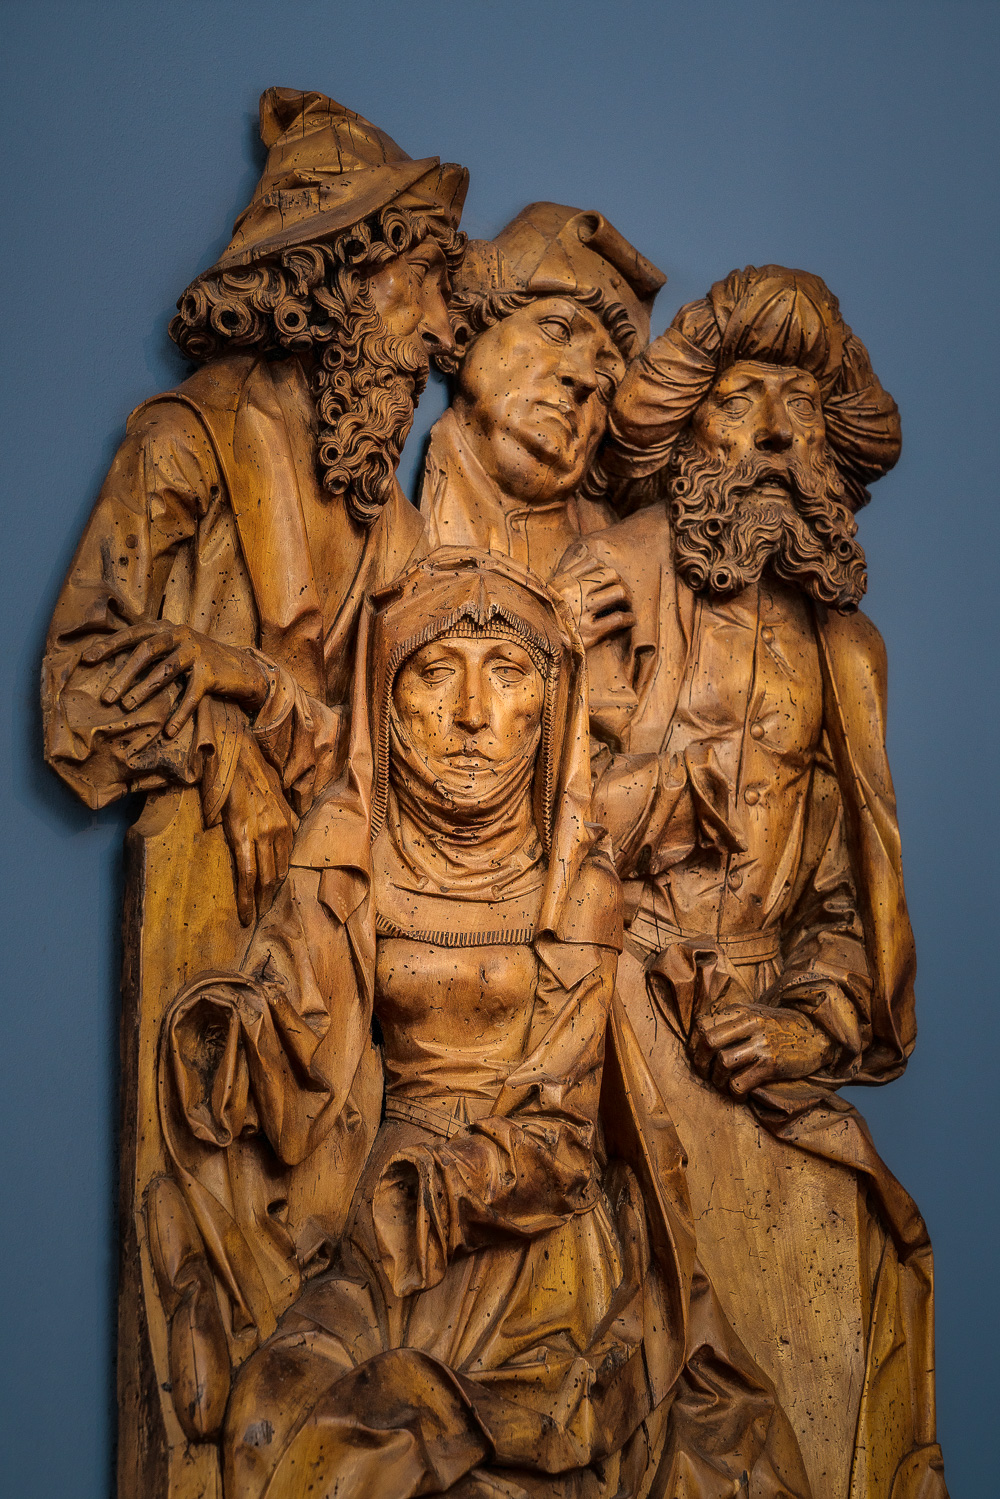 A  sculpture  of a group of figures at the  Bode Museum  in  Berlin, Germany  suggests, to me,  intrigue and politics .